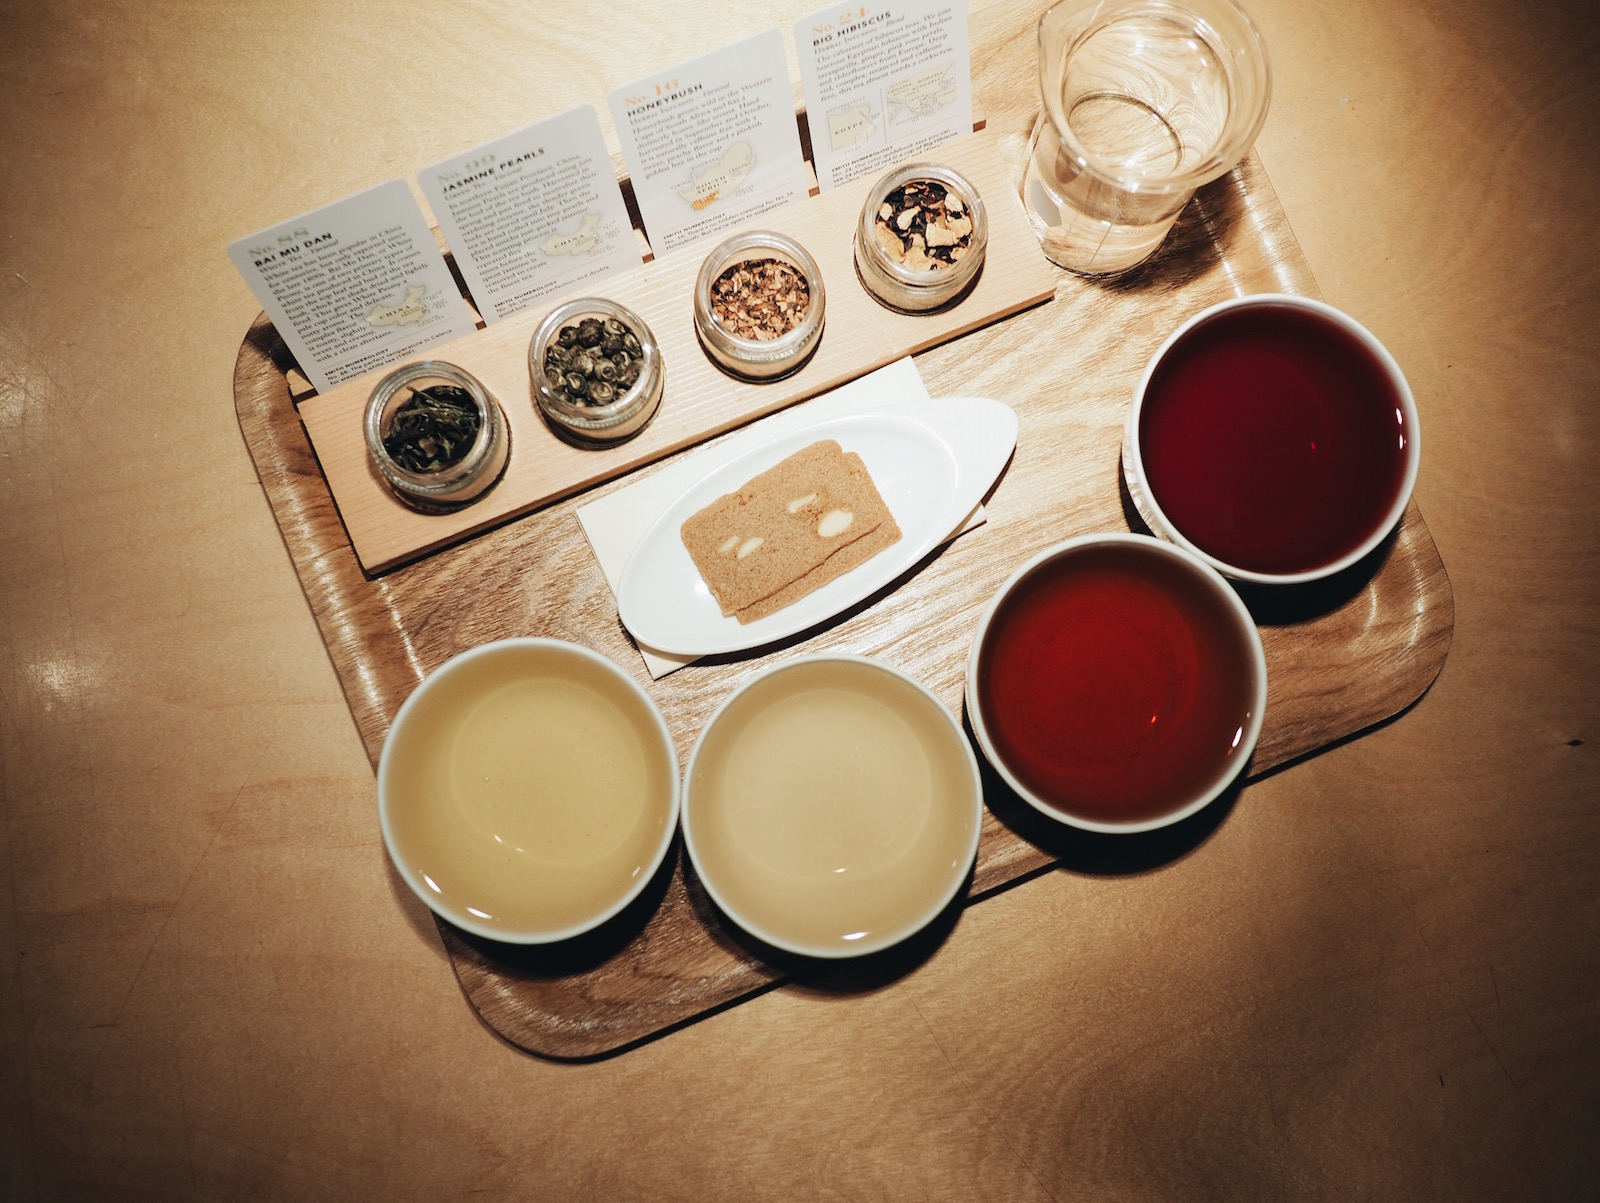 {Our tea flight.}